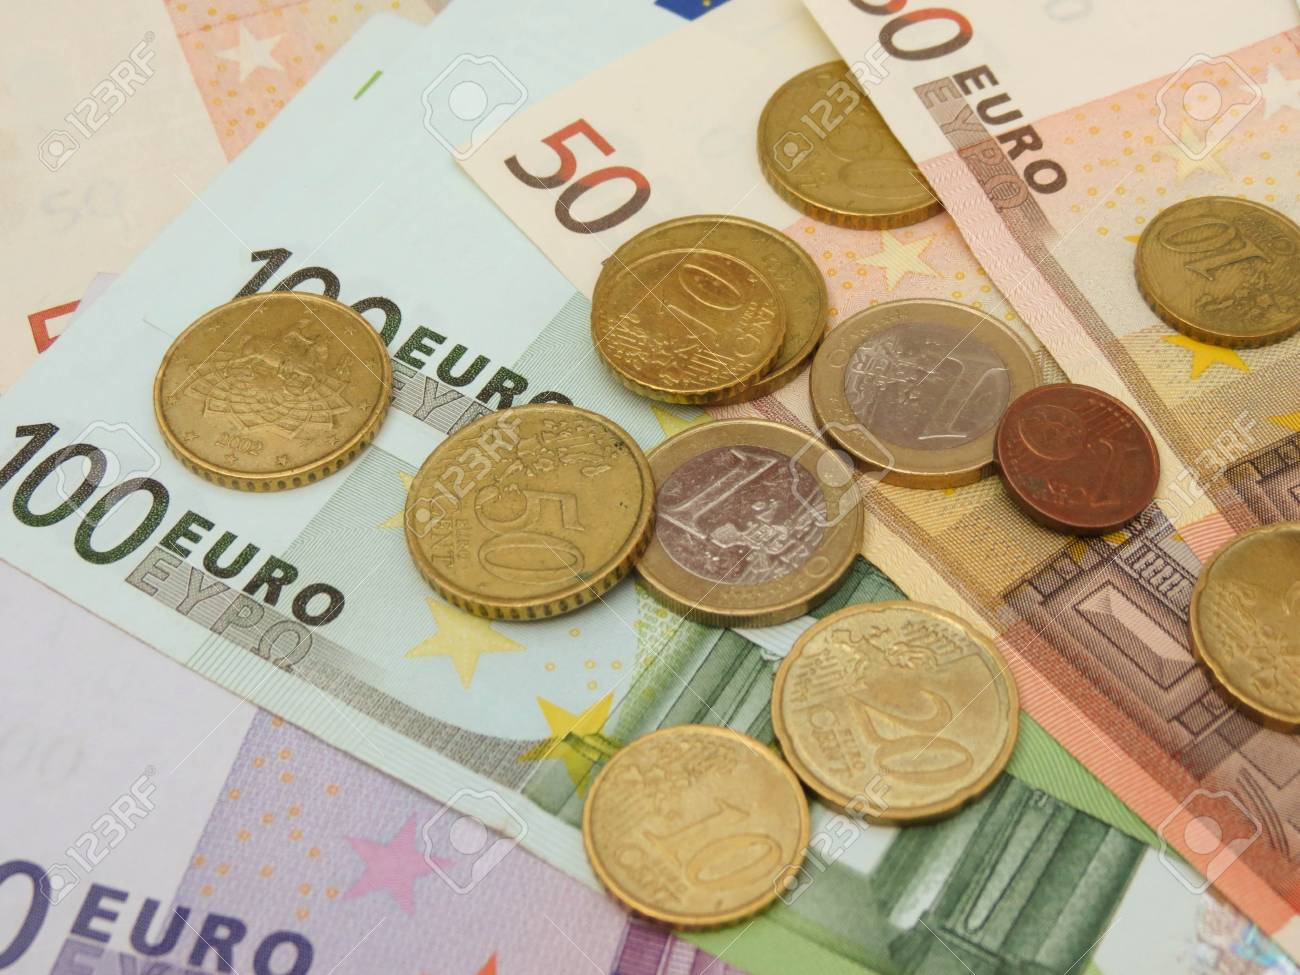 Euro (EUR) banknotes and coins money useful as a background or money concept Stock Photo - 18356212